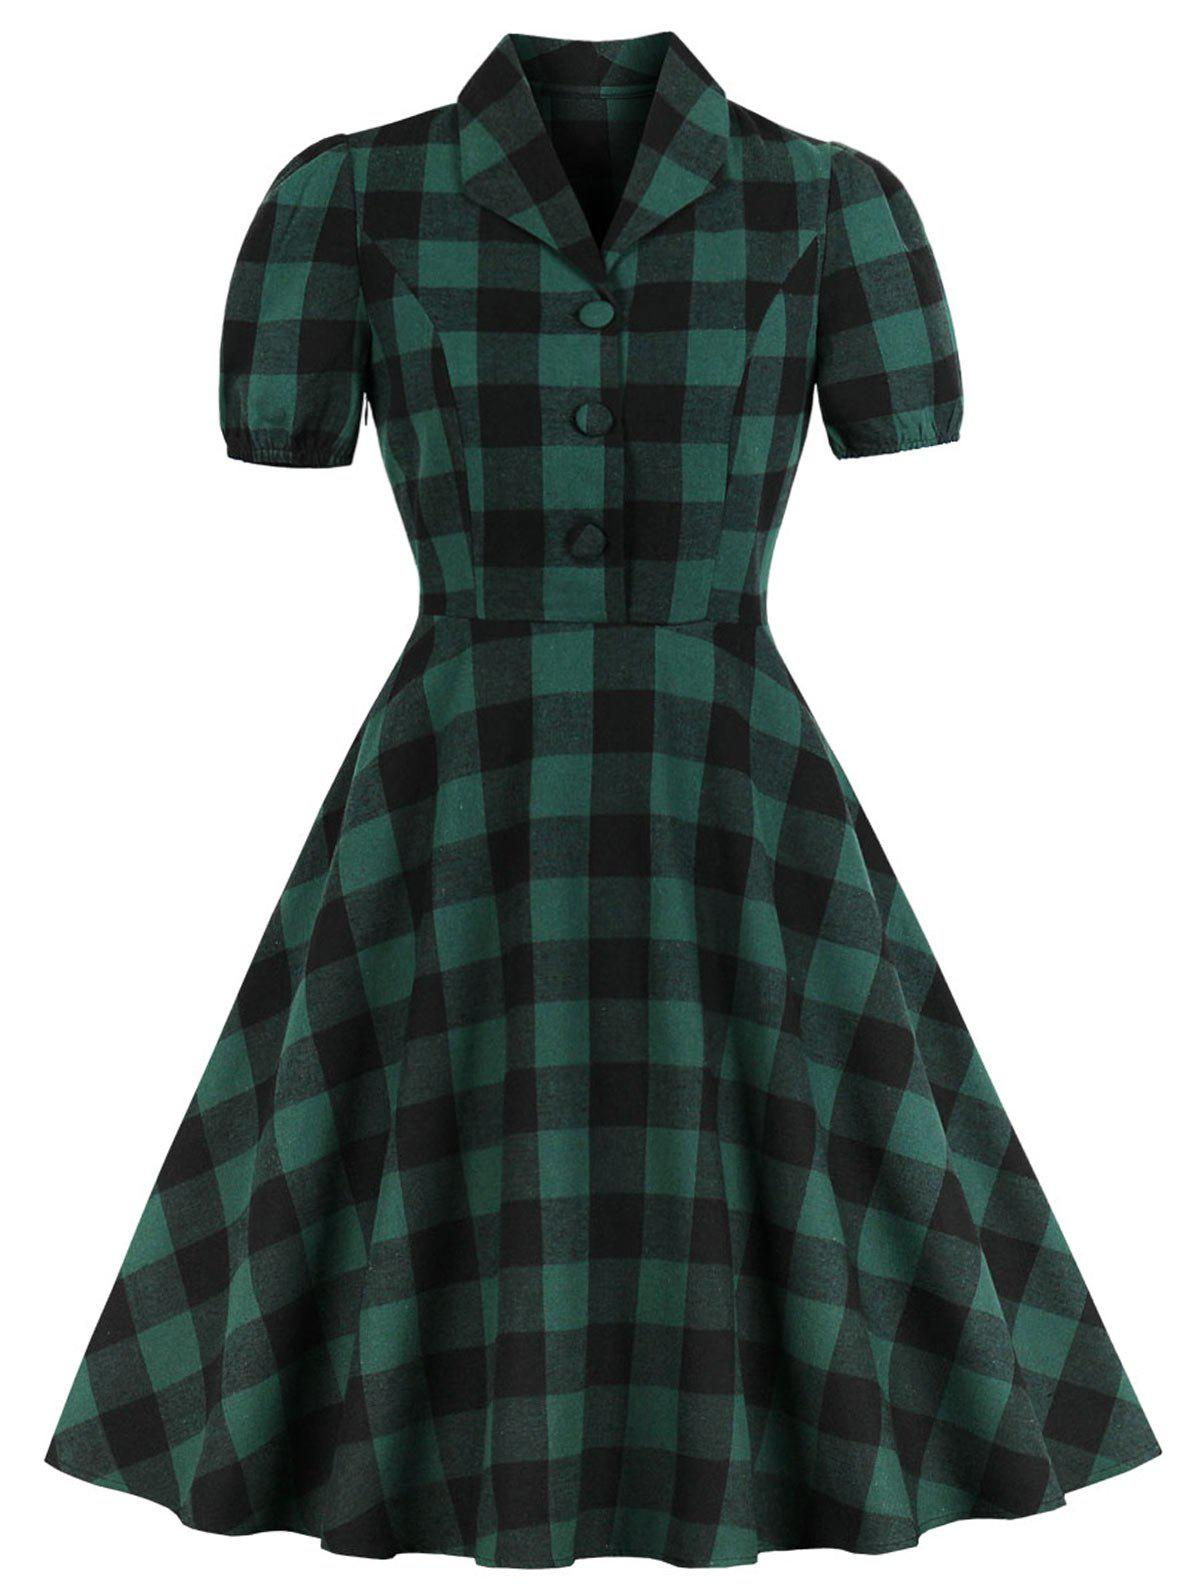 Best Vintage Shawl Collar Buttons Plaid Pin Up Dress